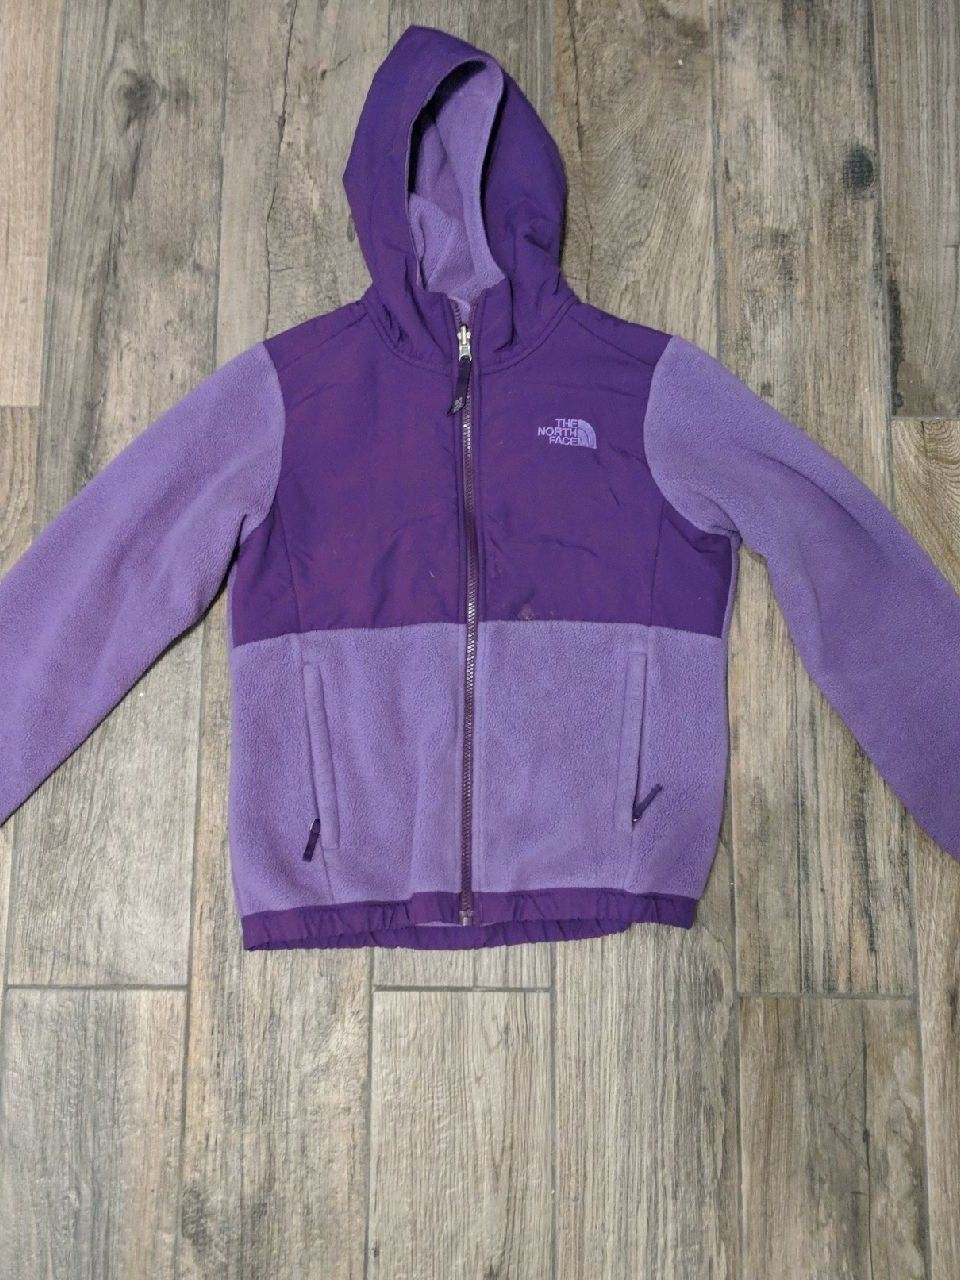 The North Face Purple Fleece Jacket Size 10 12 Very Warm Purple Jacket Good For The Winter Small Stain Fleece Jacket Jackets The North Face [ 1280 x 960 Pixel ]